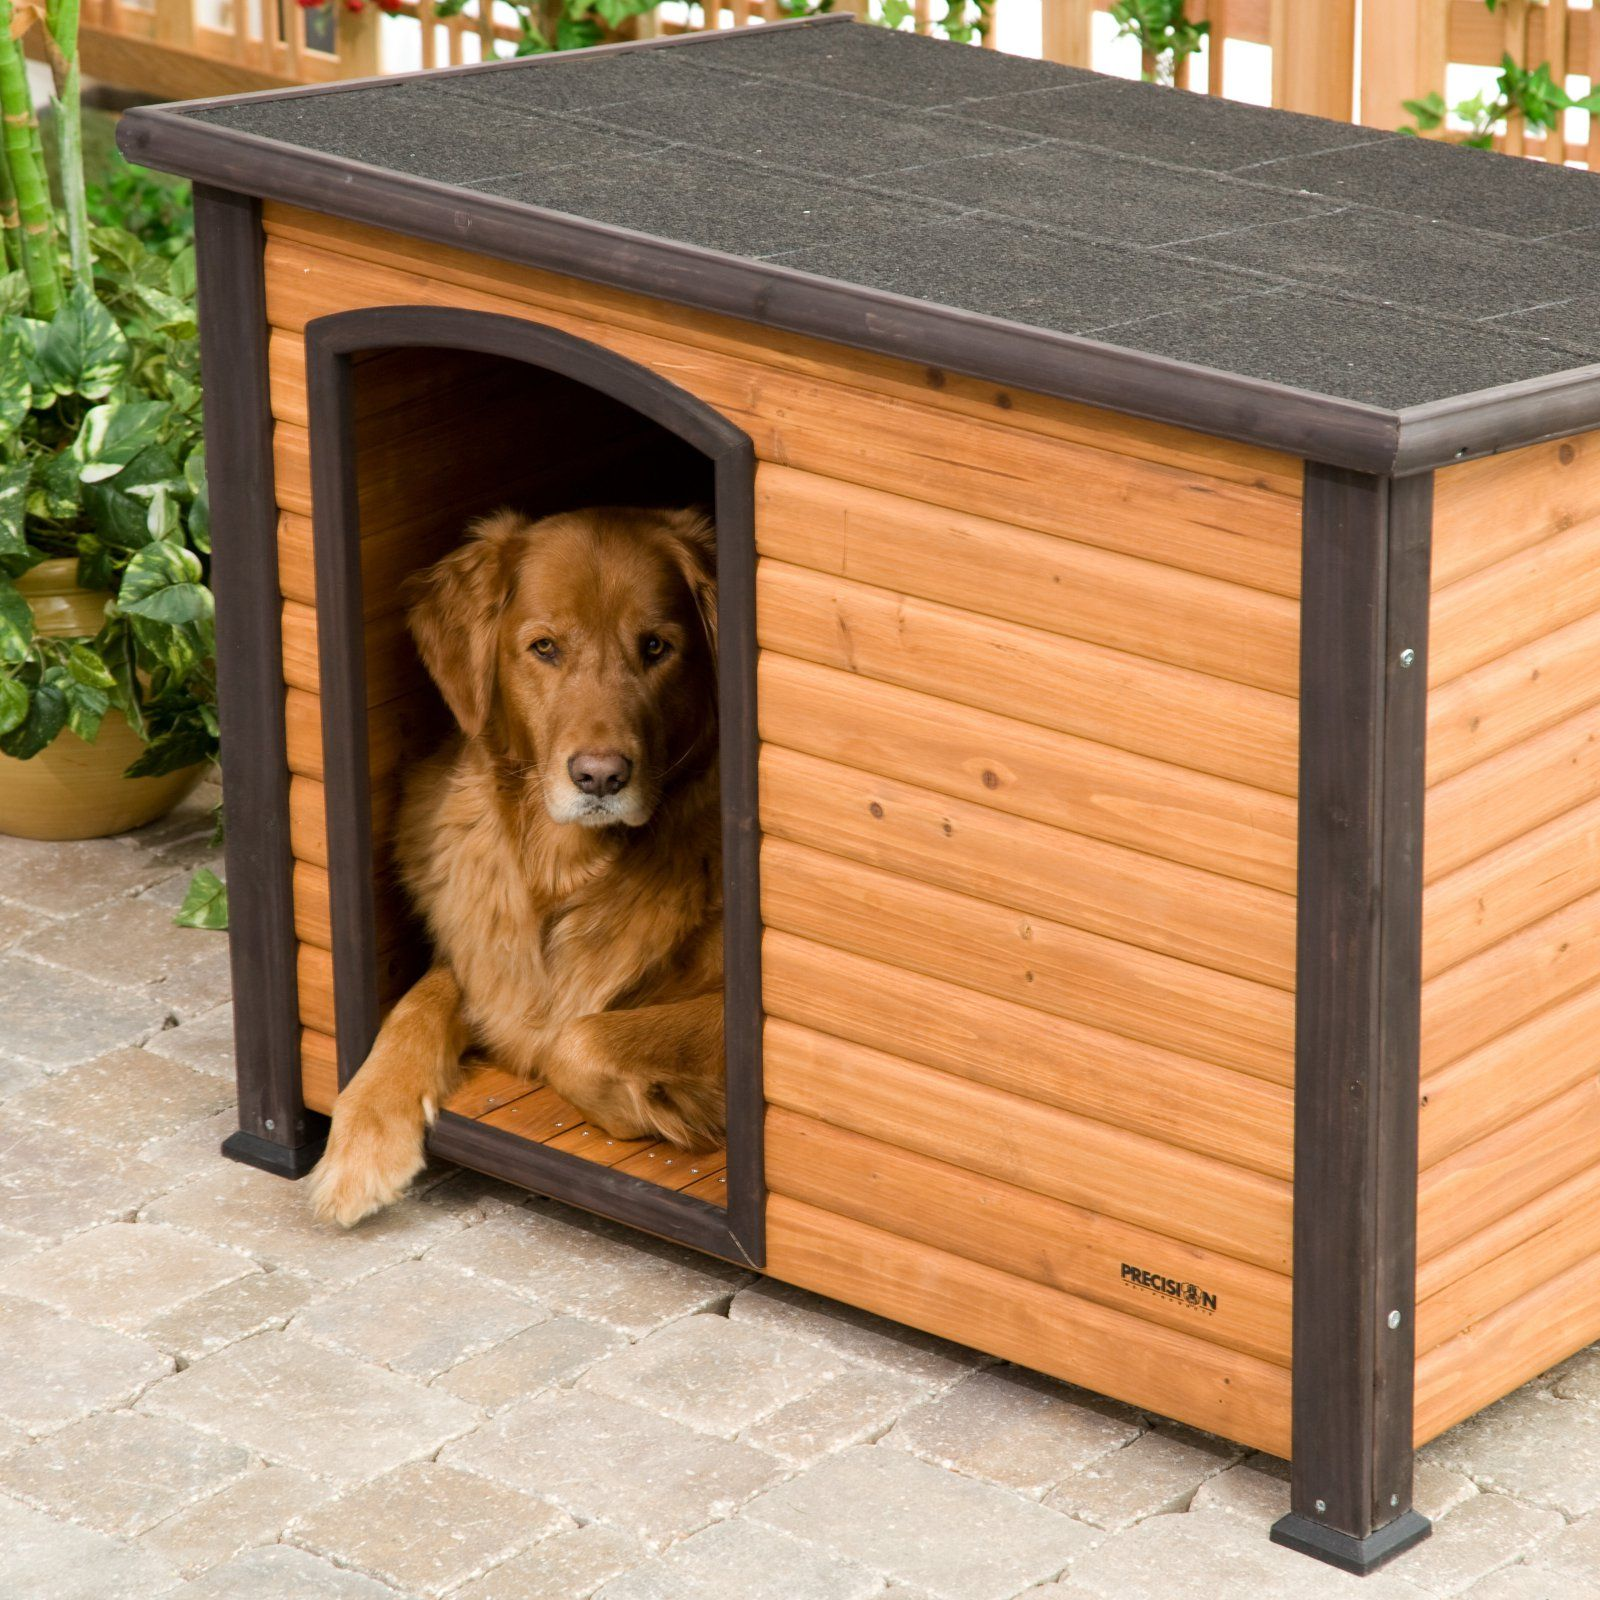 Precision Pet Extreme Outback Log Cabin Dog House Outdoor Dog